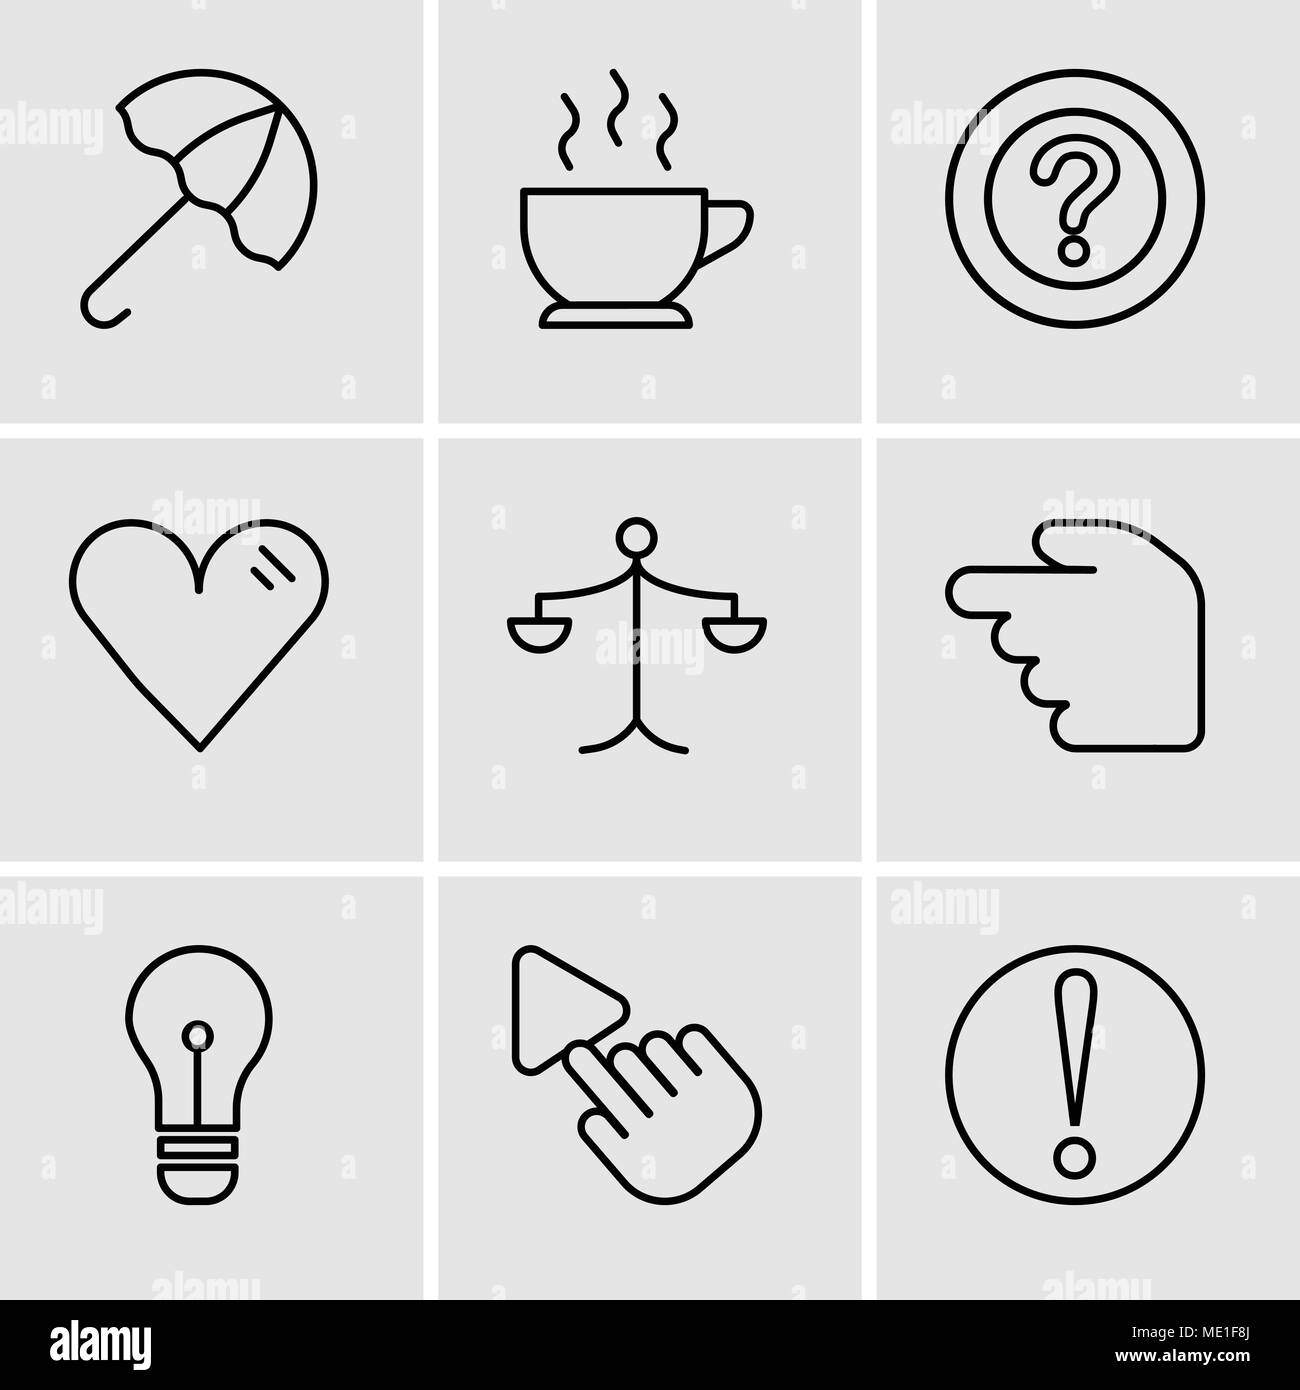 Set Of 9 simple editable icons such as Caution, Selection Tool, Light bulb, Hourglass, Weighing scale, Heart, Question mark, Cup of hot coffee, Open u - Stock Vector